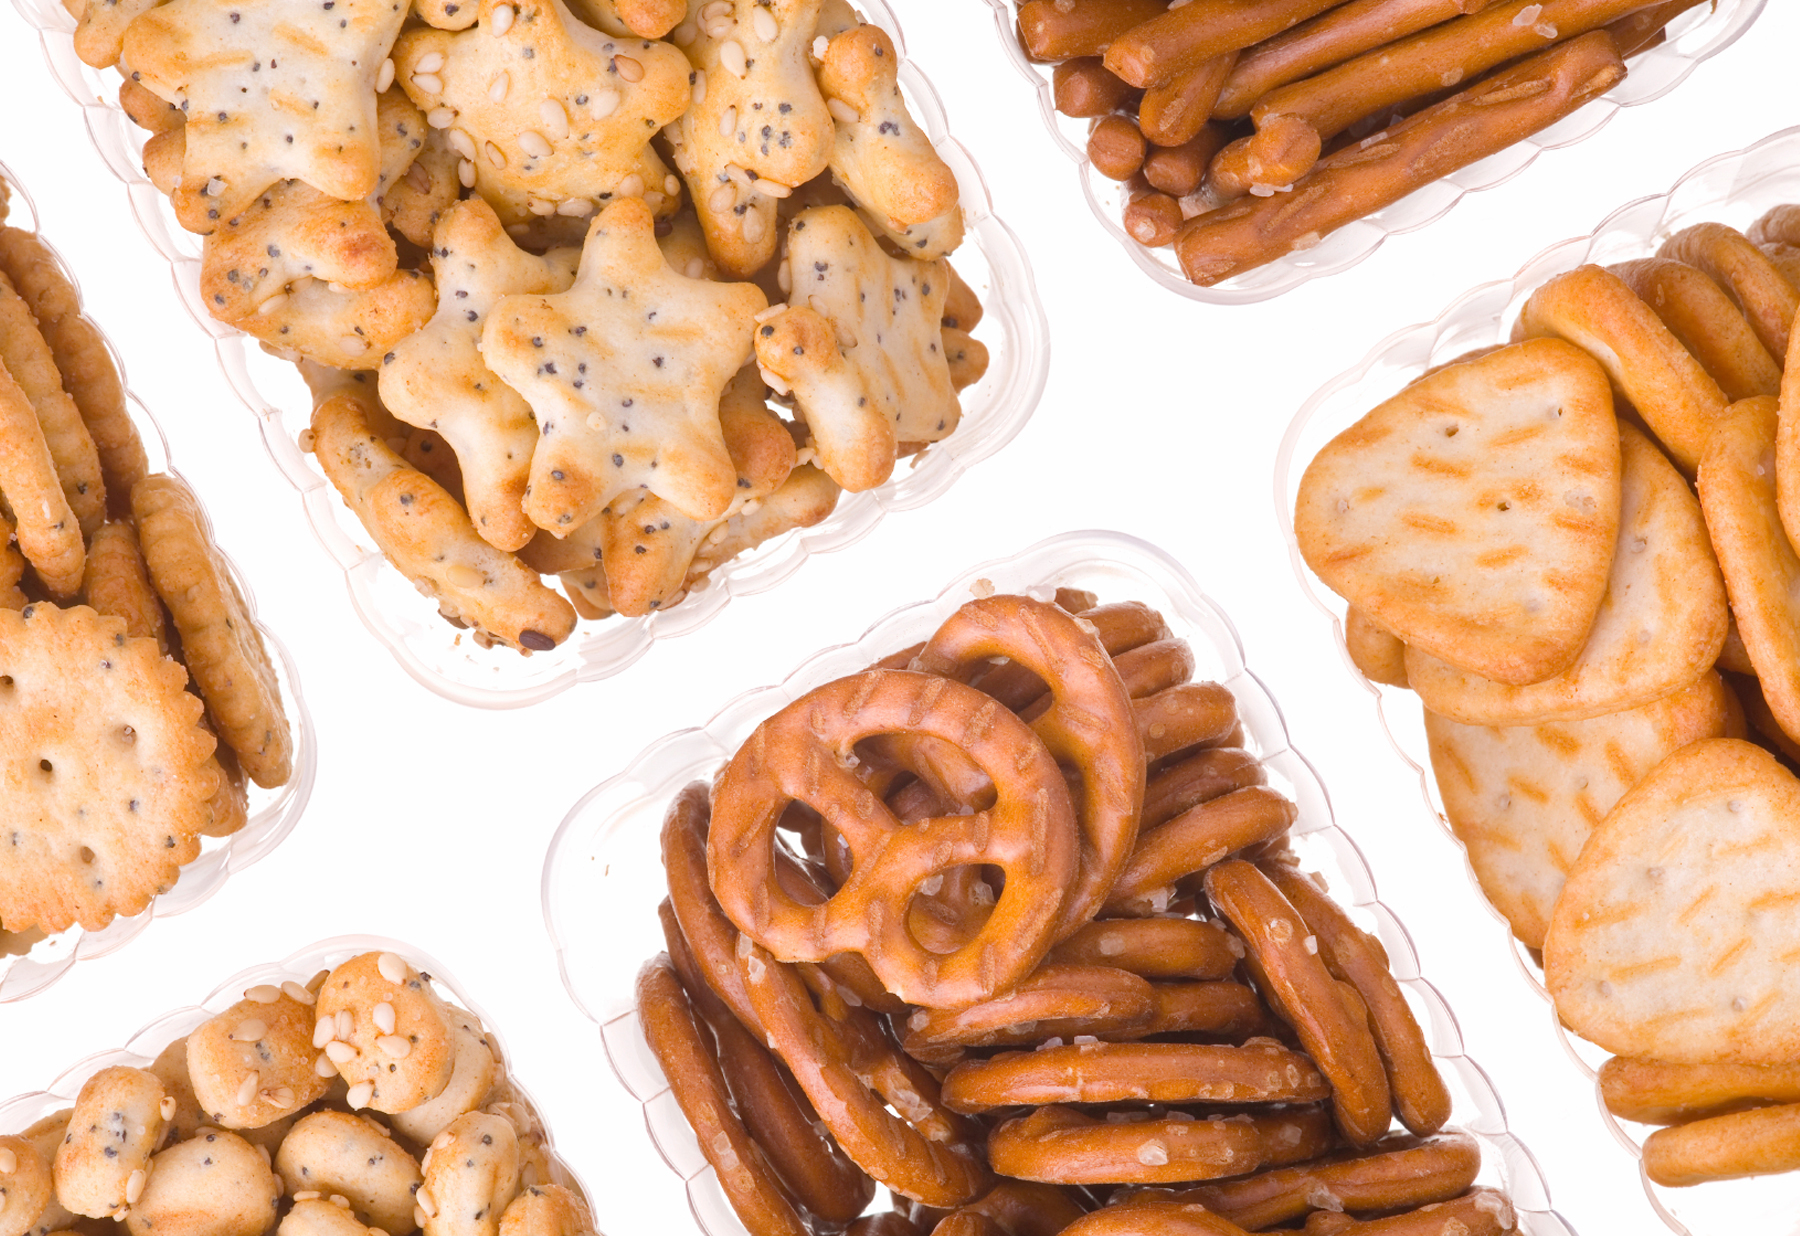 9 Popular Foods That Are Total Frauds